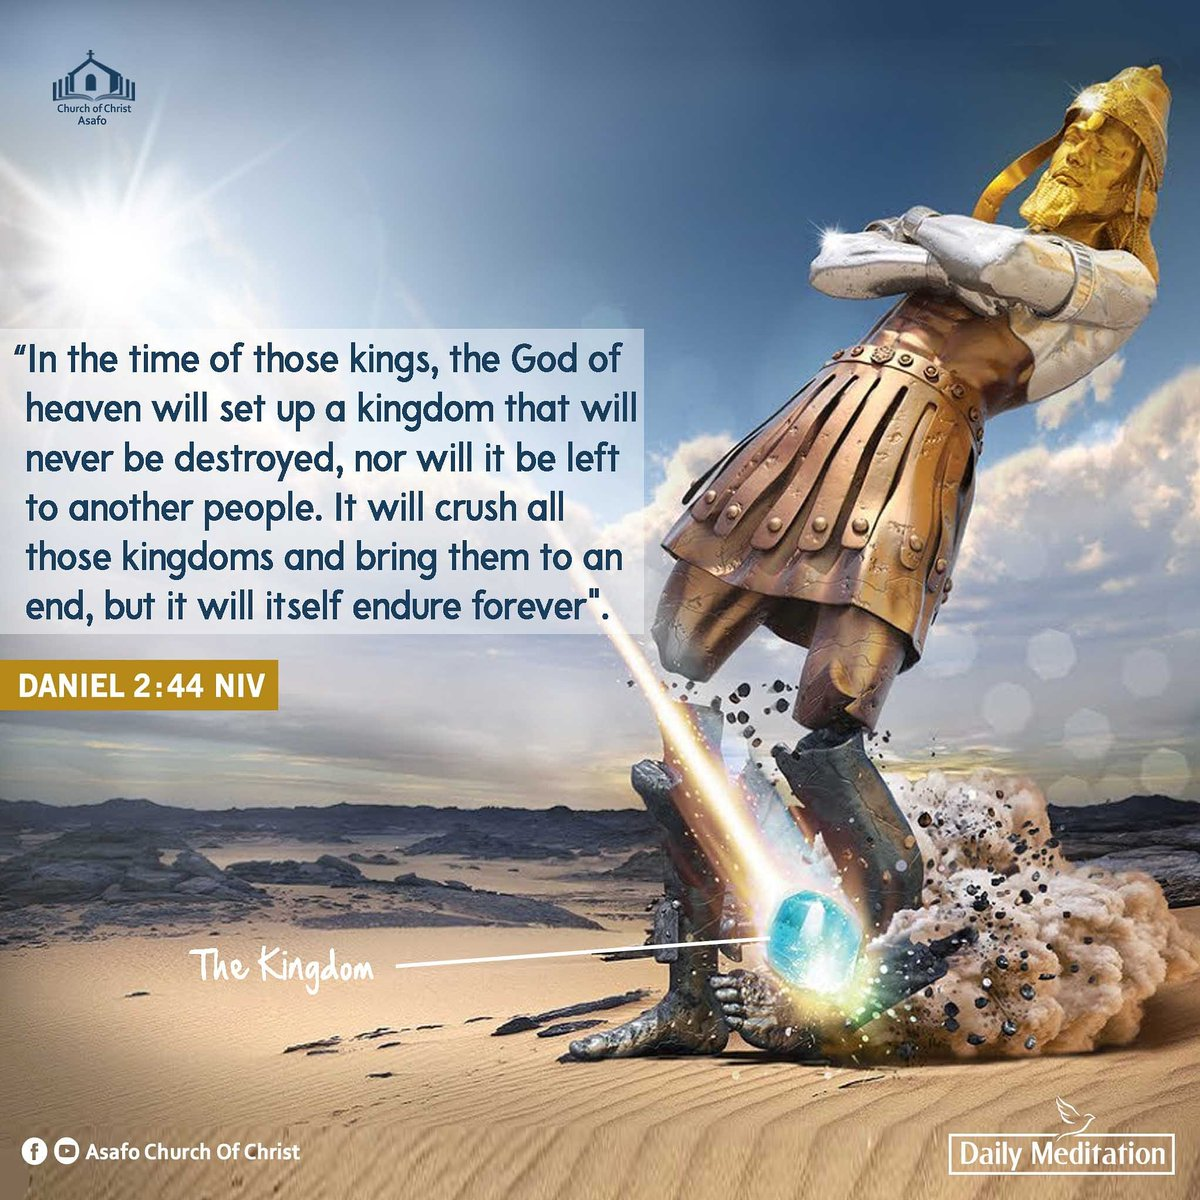 God hints of the establishment of an eternal Kingdom, Christ's  Church, which the gates of Hades shall not prevail against. It's a blessing to be part of this great kingdom. We must remain in, and support this kingdom with OUR ALL! <br>http://pic.twitter.com/DJZ1jL1ZFj